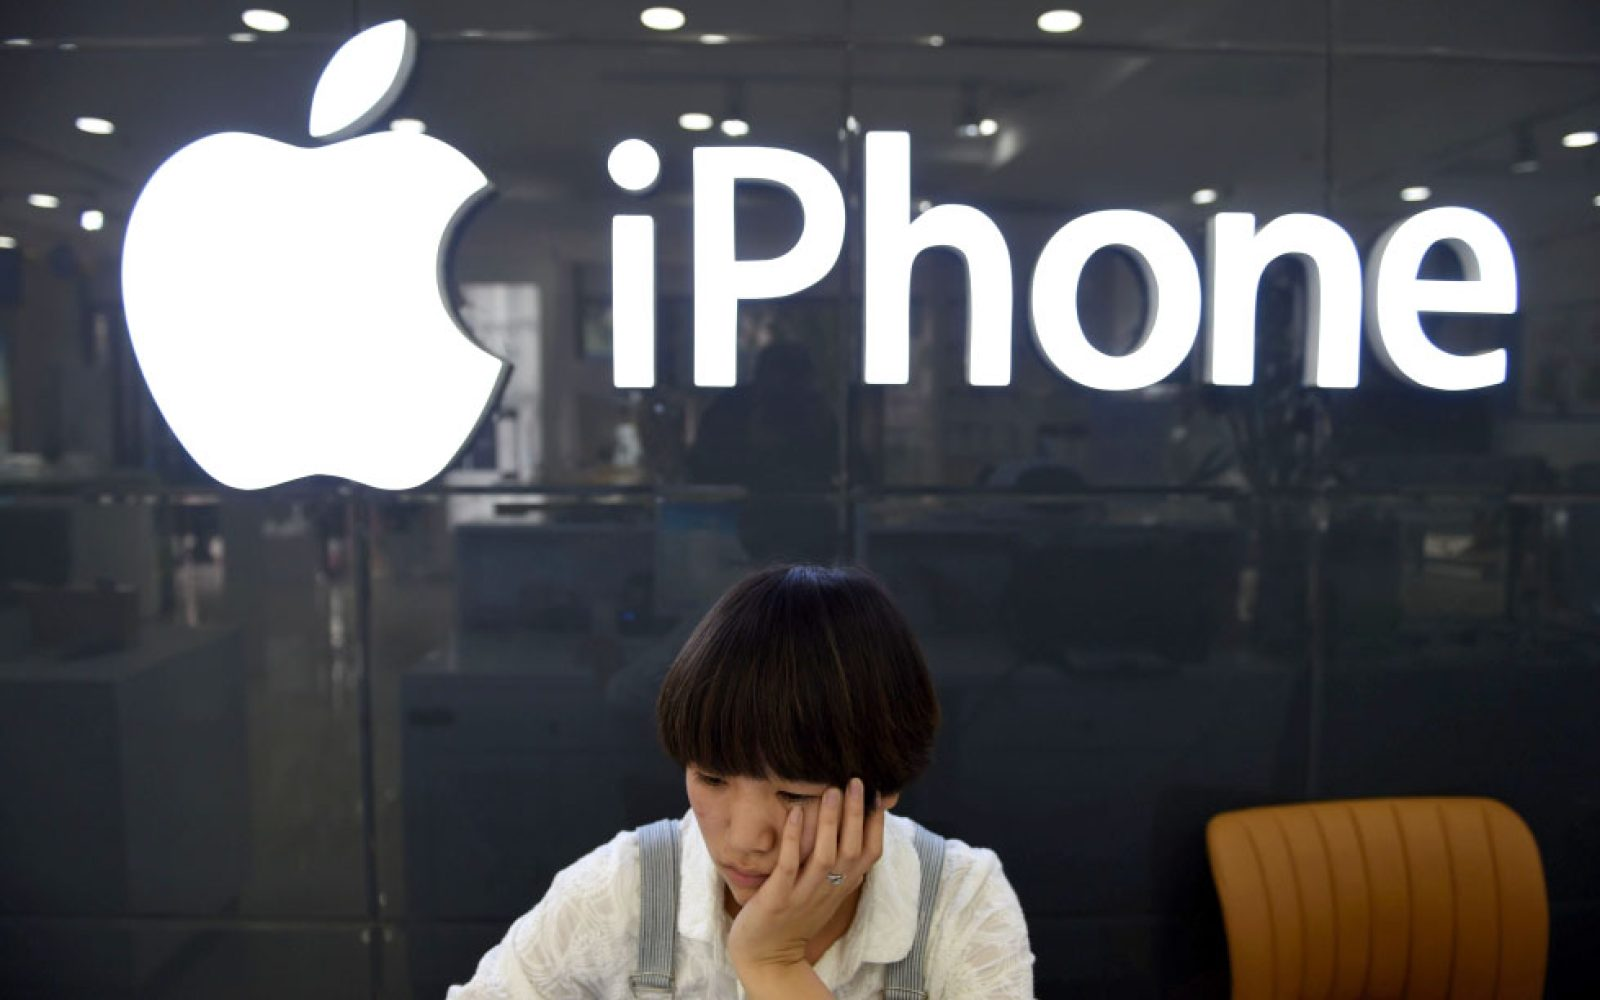 Chinese Mac and iOS users targeted by new 'WireLurker' malware capable of infecting non-jailbroken devices